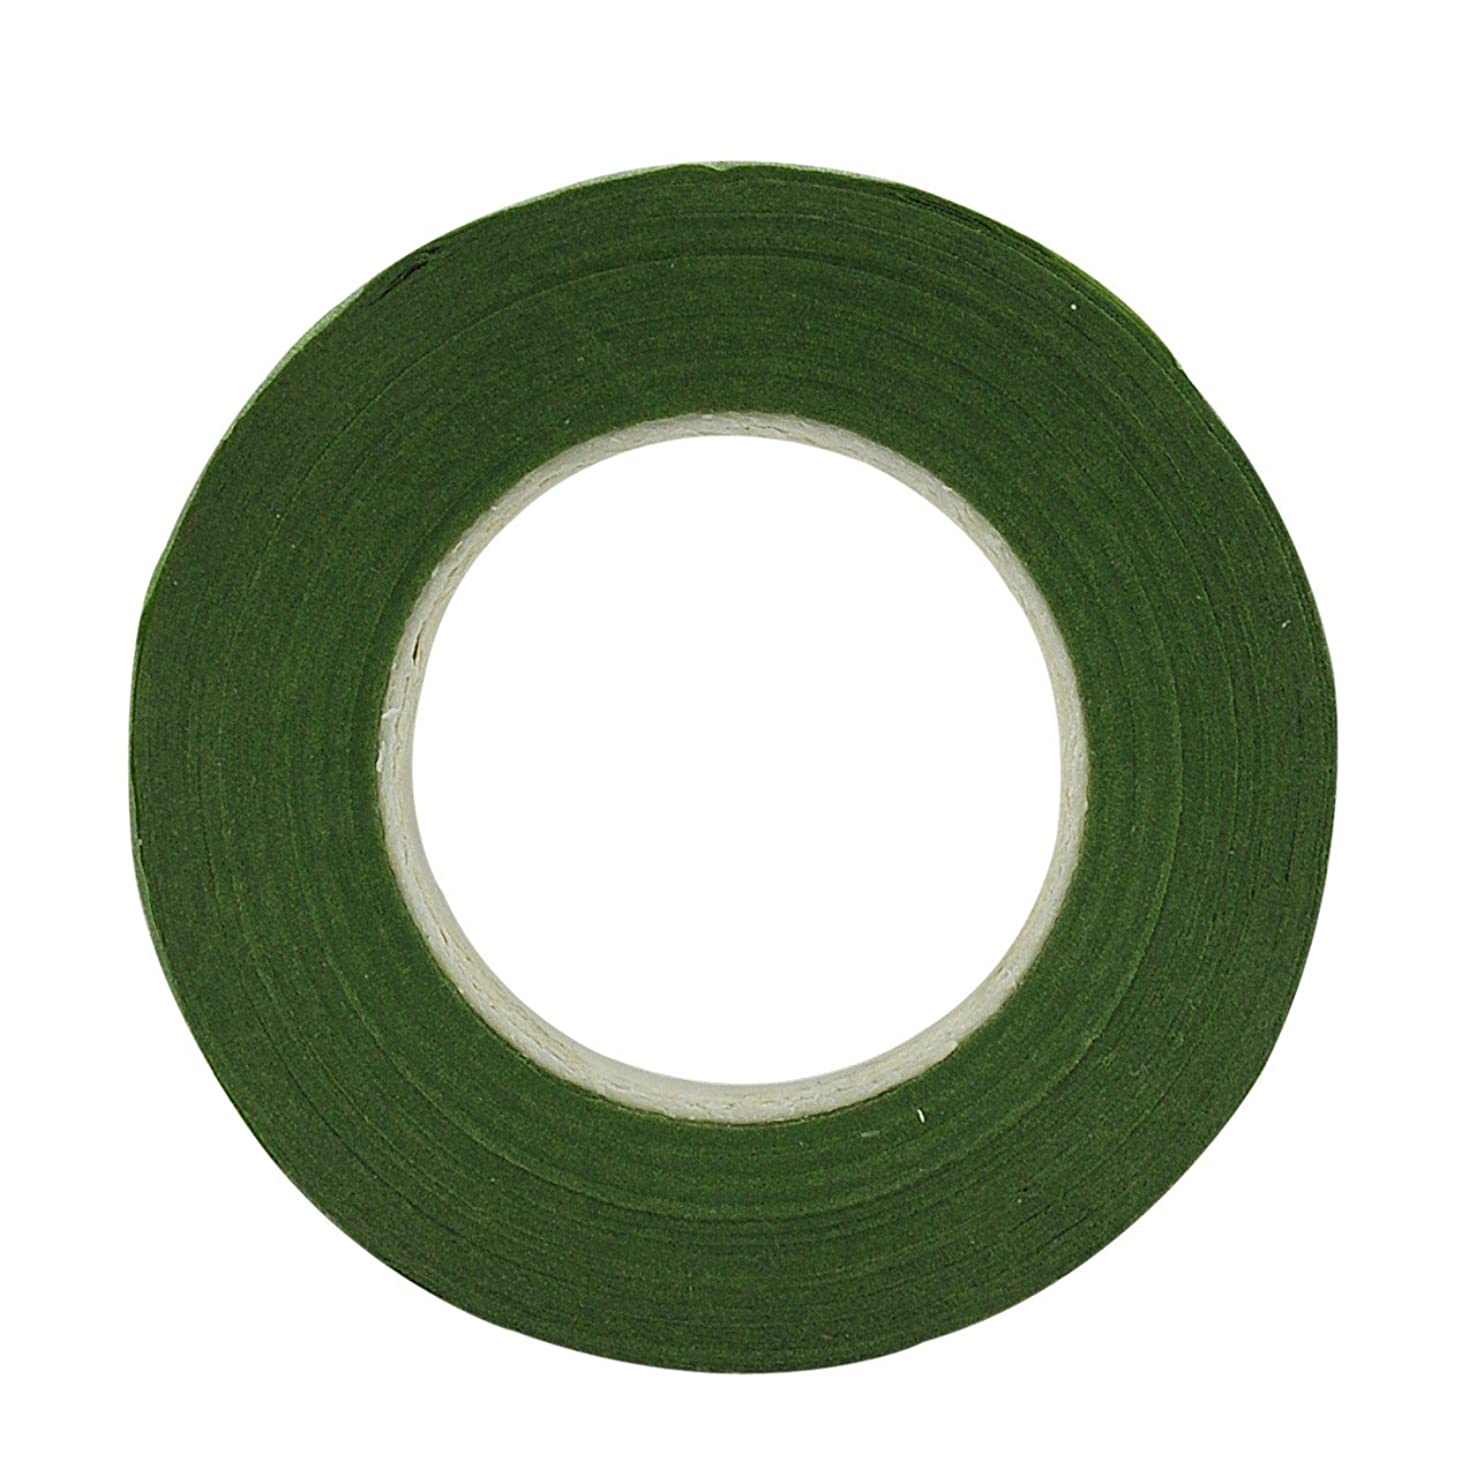 YazyCraft 1/2 inch Floral Tape Lime Green